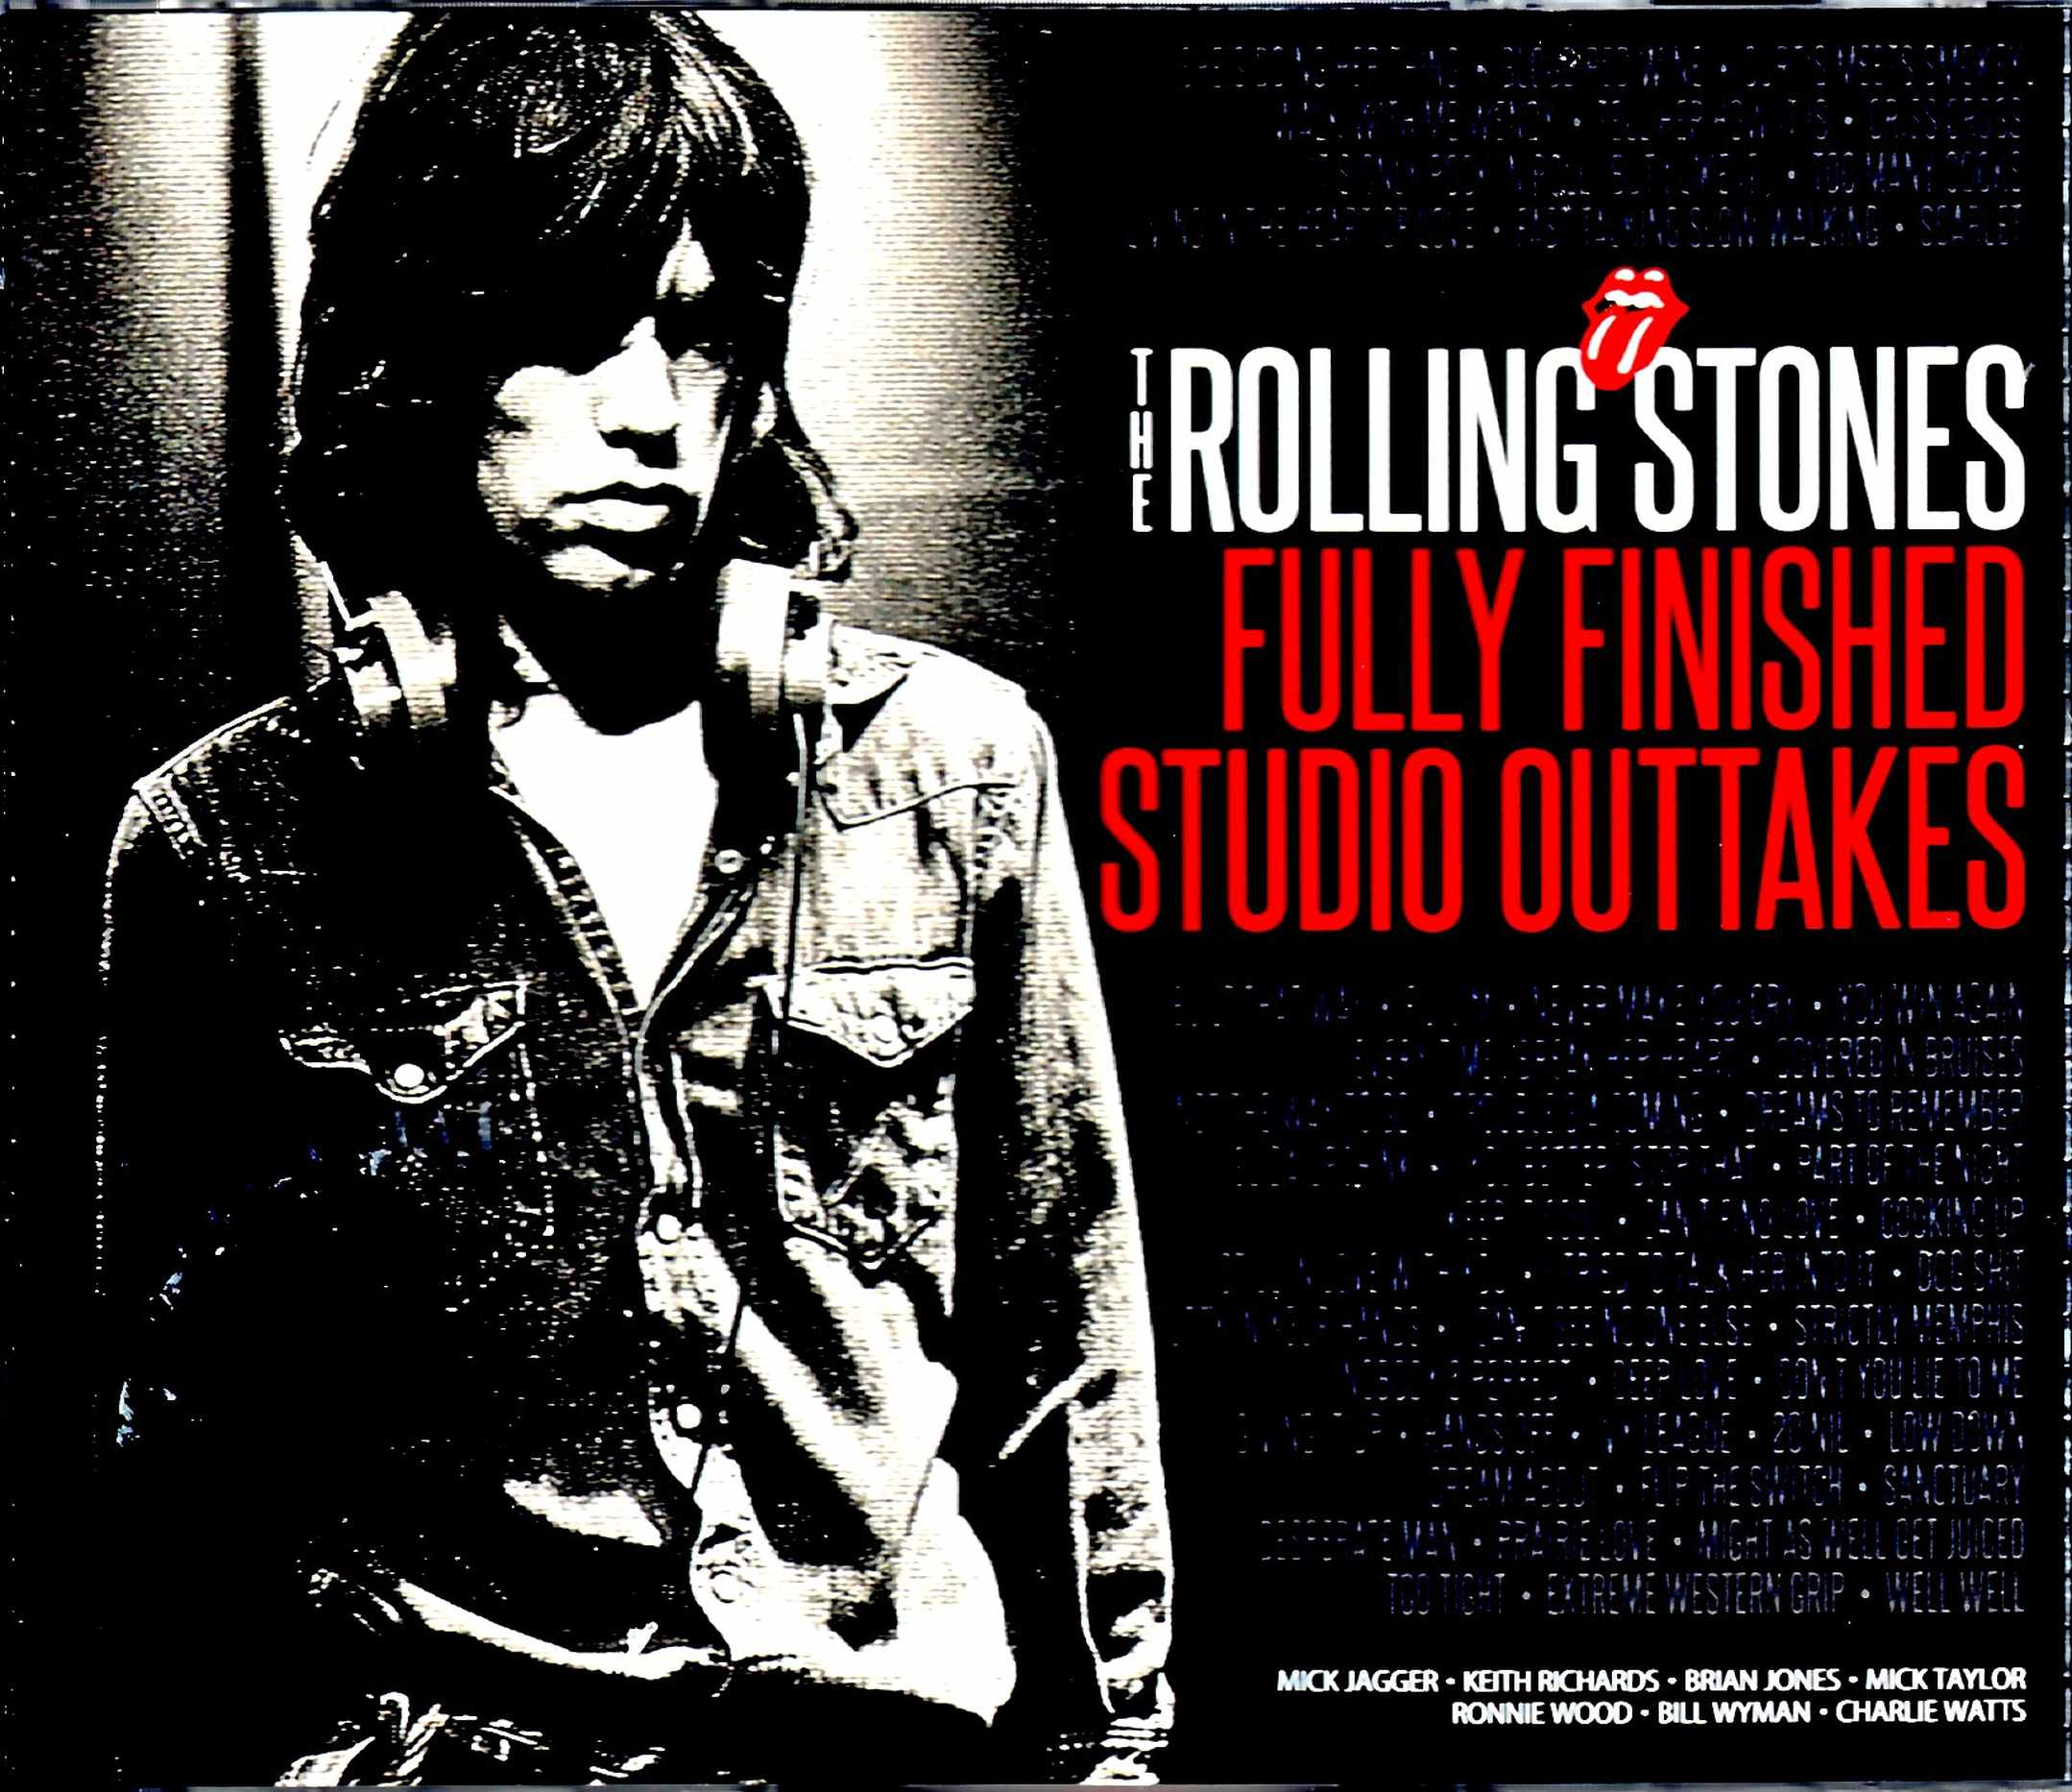 Rolling Stones ローリング・ストーンズ/Fully Finished Studio Outtakes Remastered